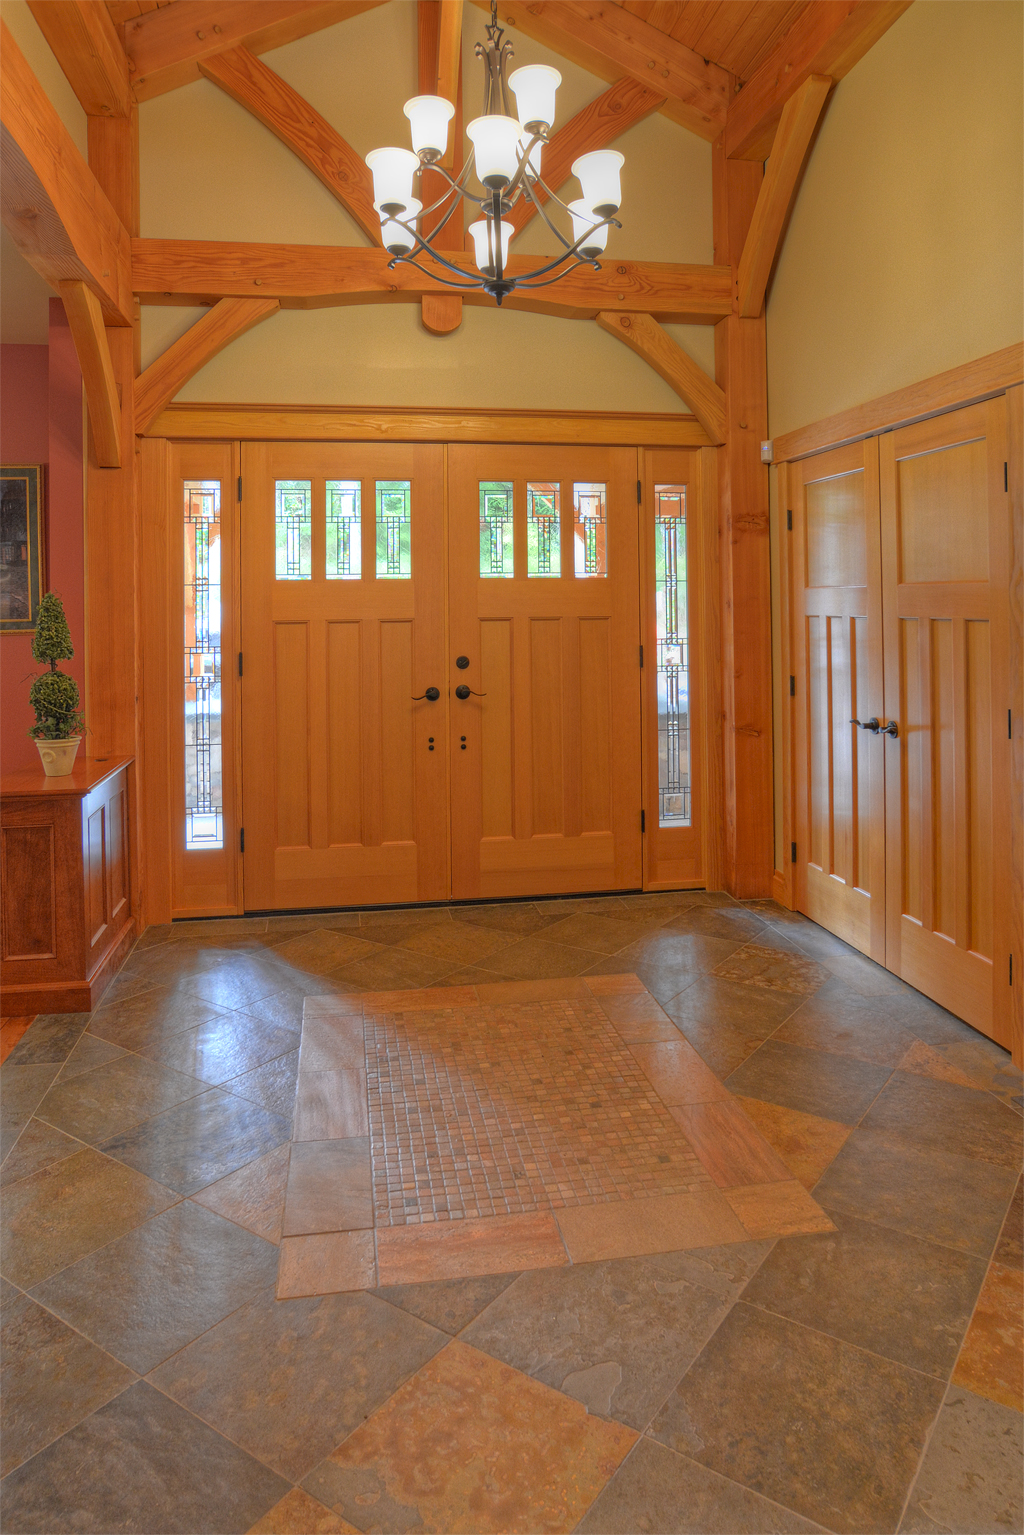 Foyer Hardwood Floors : Entry rugs for hardwood floors roselawnlutheran